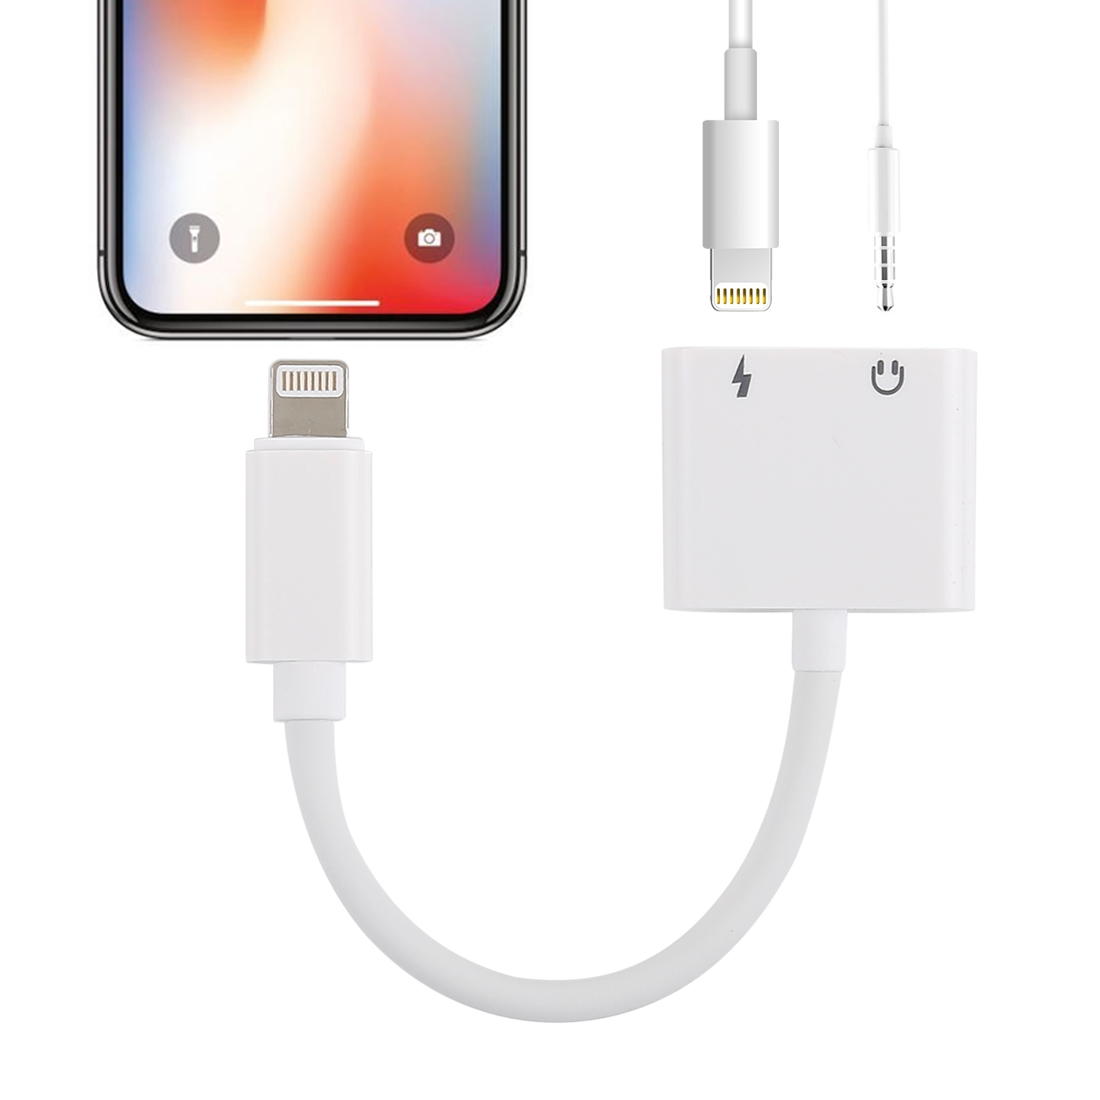 GL011 2 in 1 8 Pin Female + 3.5mm Female to 8 Pin Male Audio Charging Adapter, For iPhone XR / iPhone XS MAX / iPhone X & XS / iPhone 8 & 8 Plus / iPhone 7 & 7 Plus / iPhone 6 & 6s & 6 Plus & 6s Plus / iPad (White)